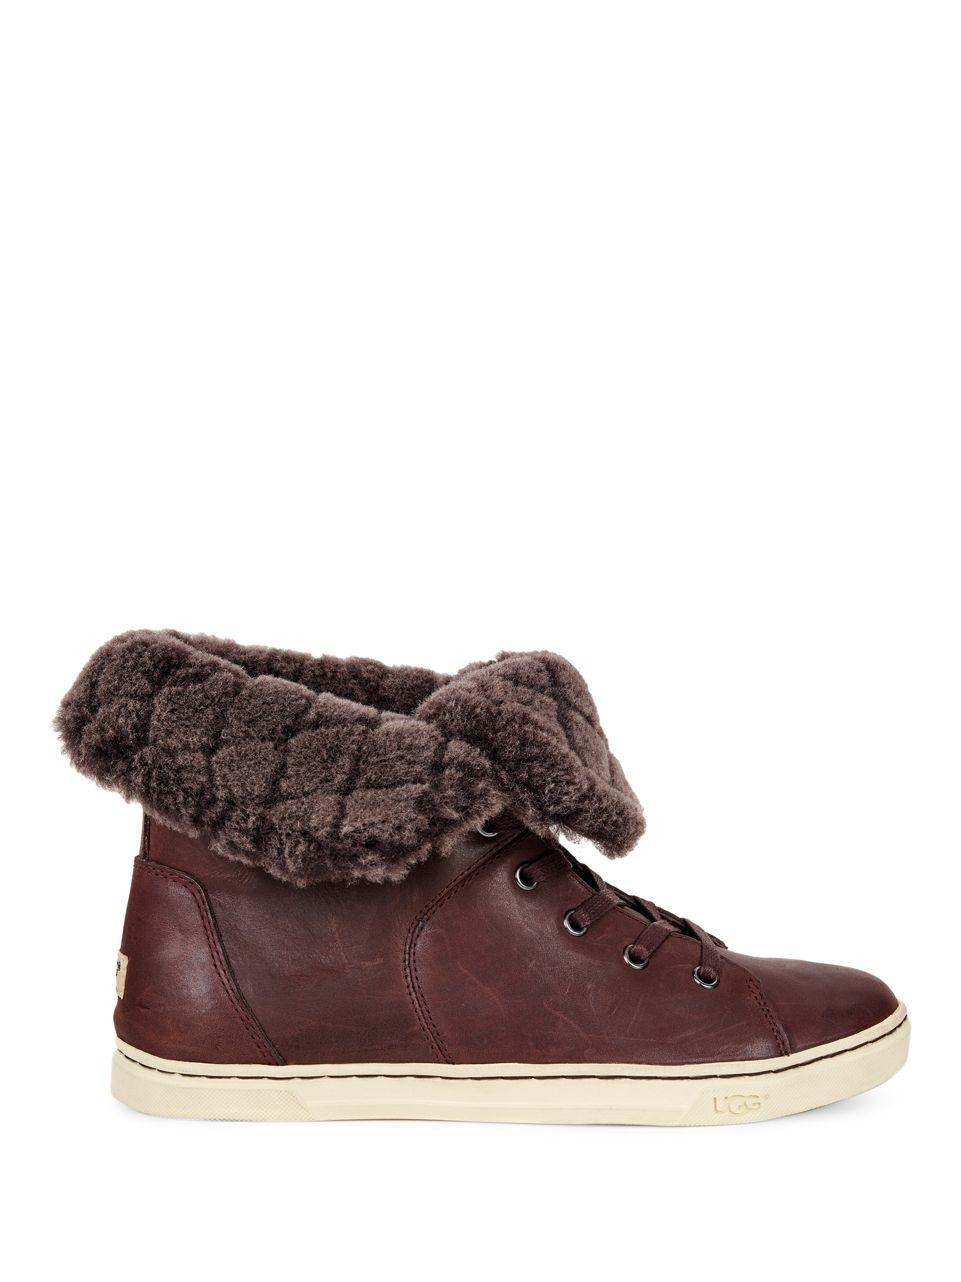 Lyst Ugg Croft Luxe Quilt Shearling Amp Leather Sneakers